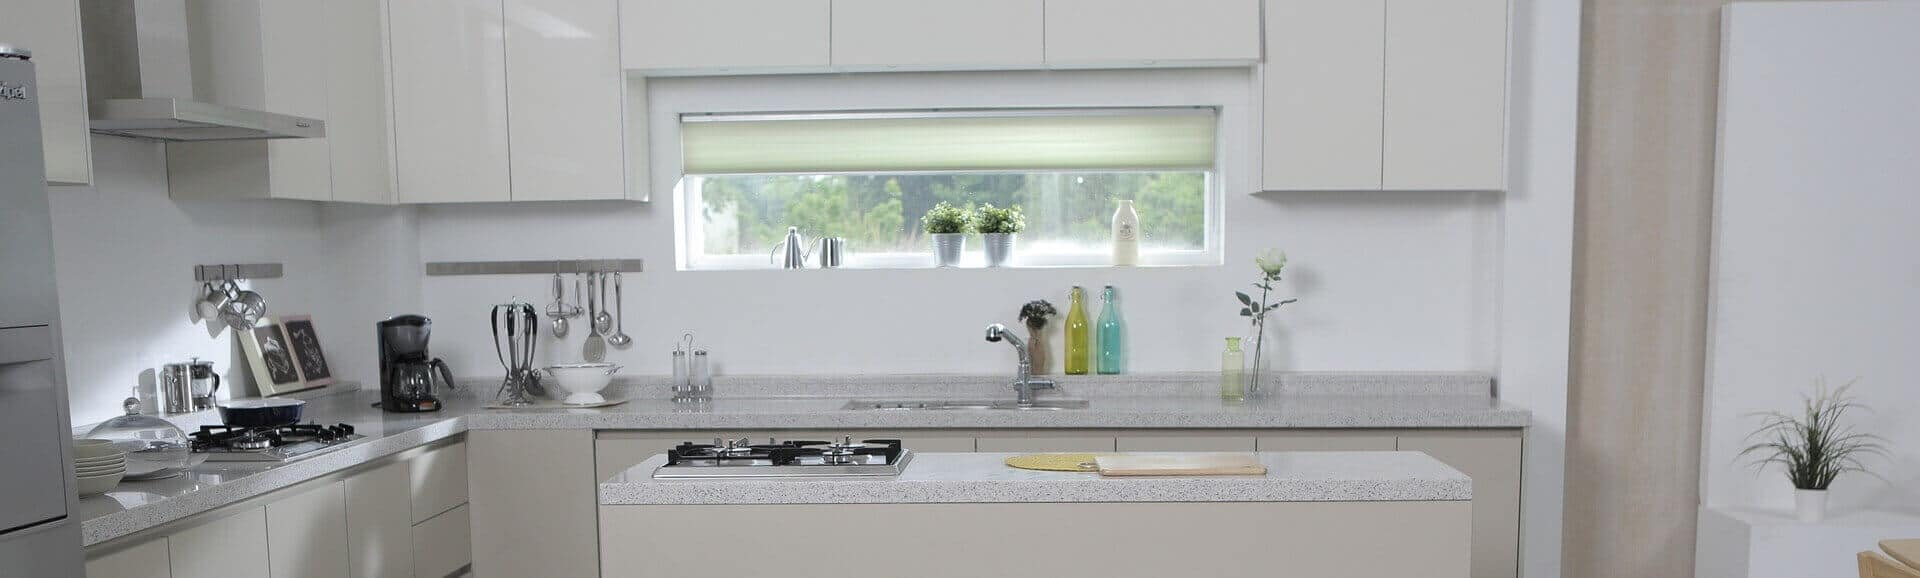 Kitchen countertop resurfacing with color customization - NuFinishPro